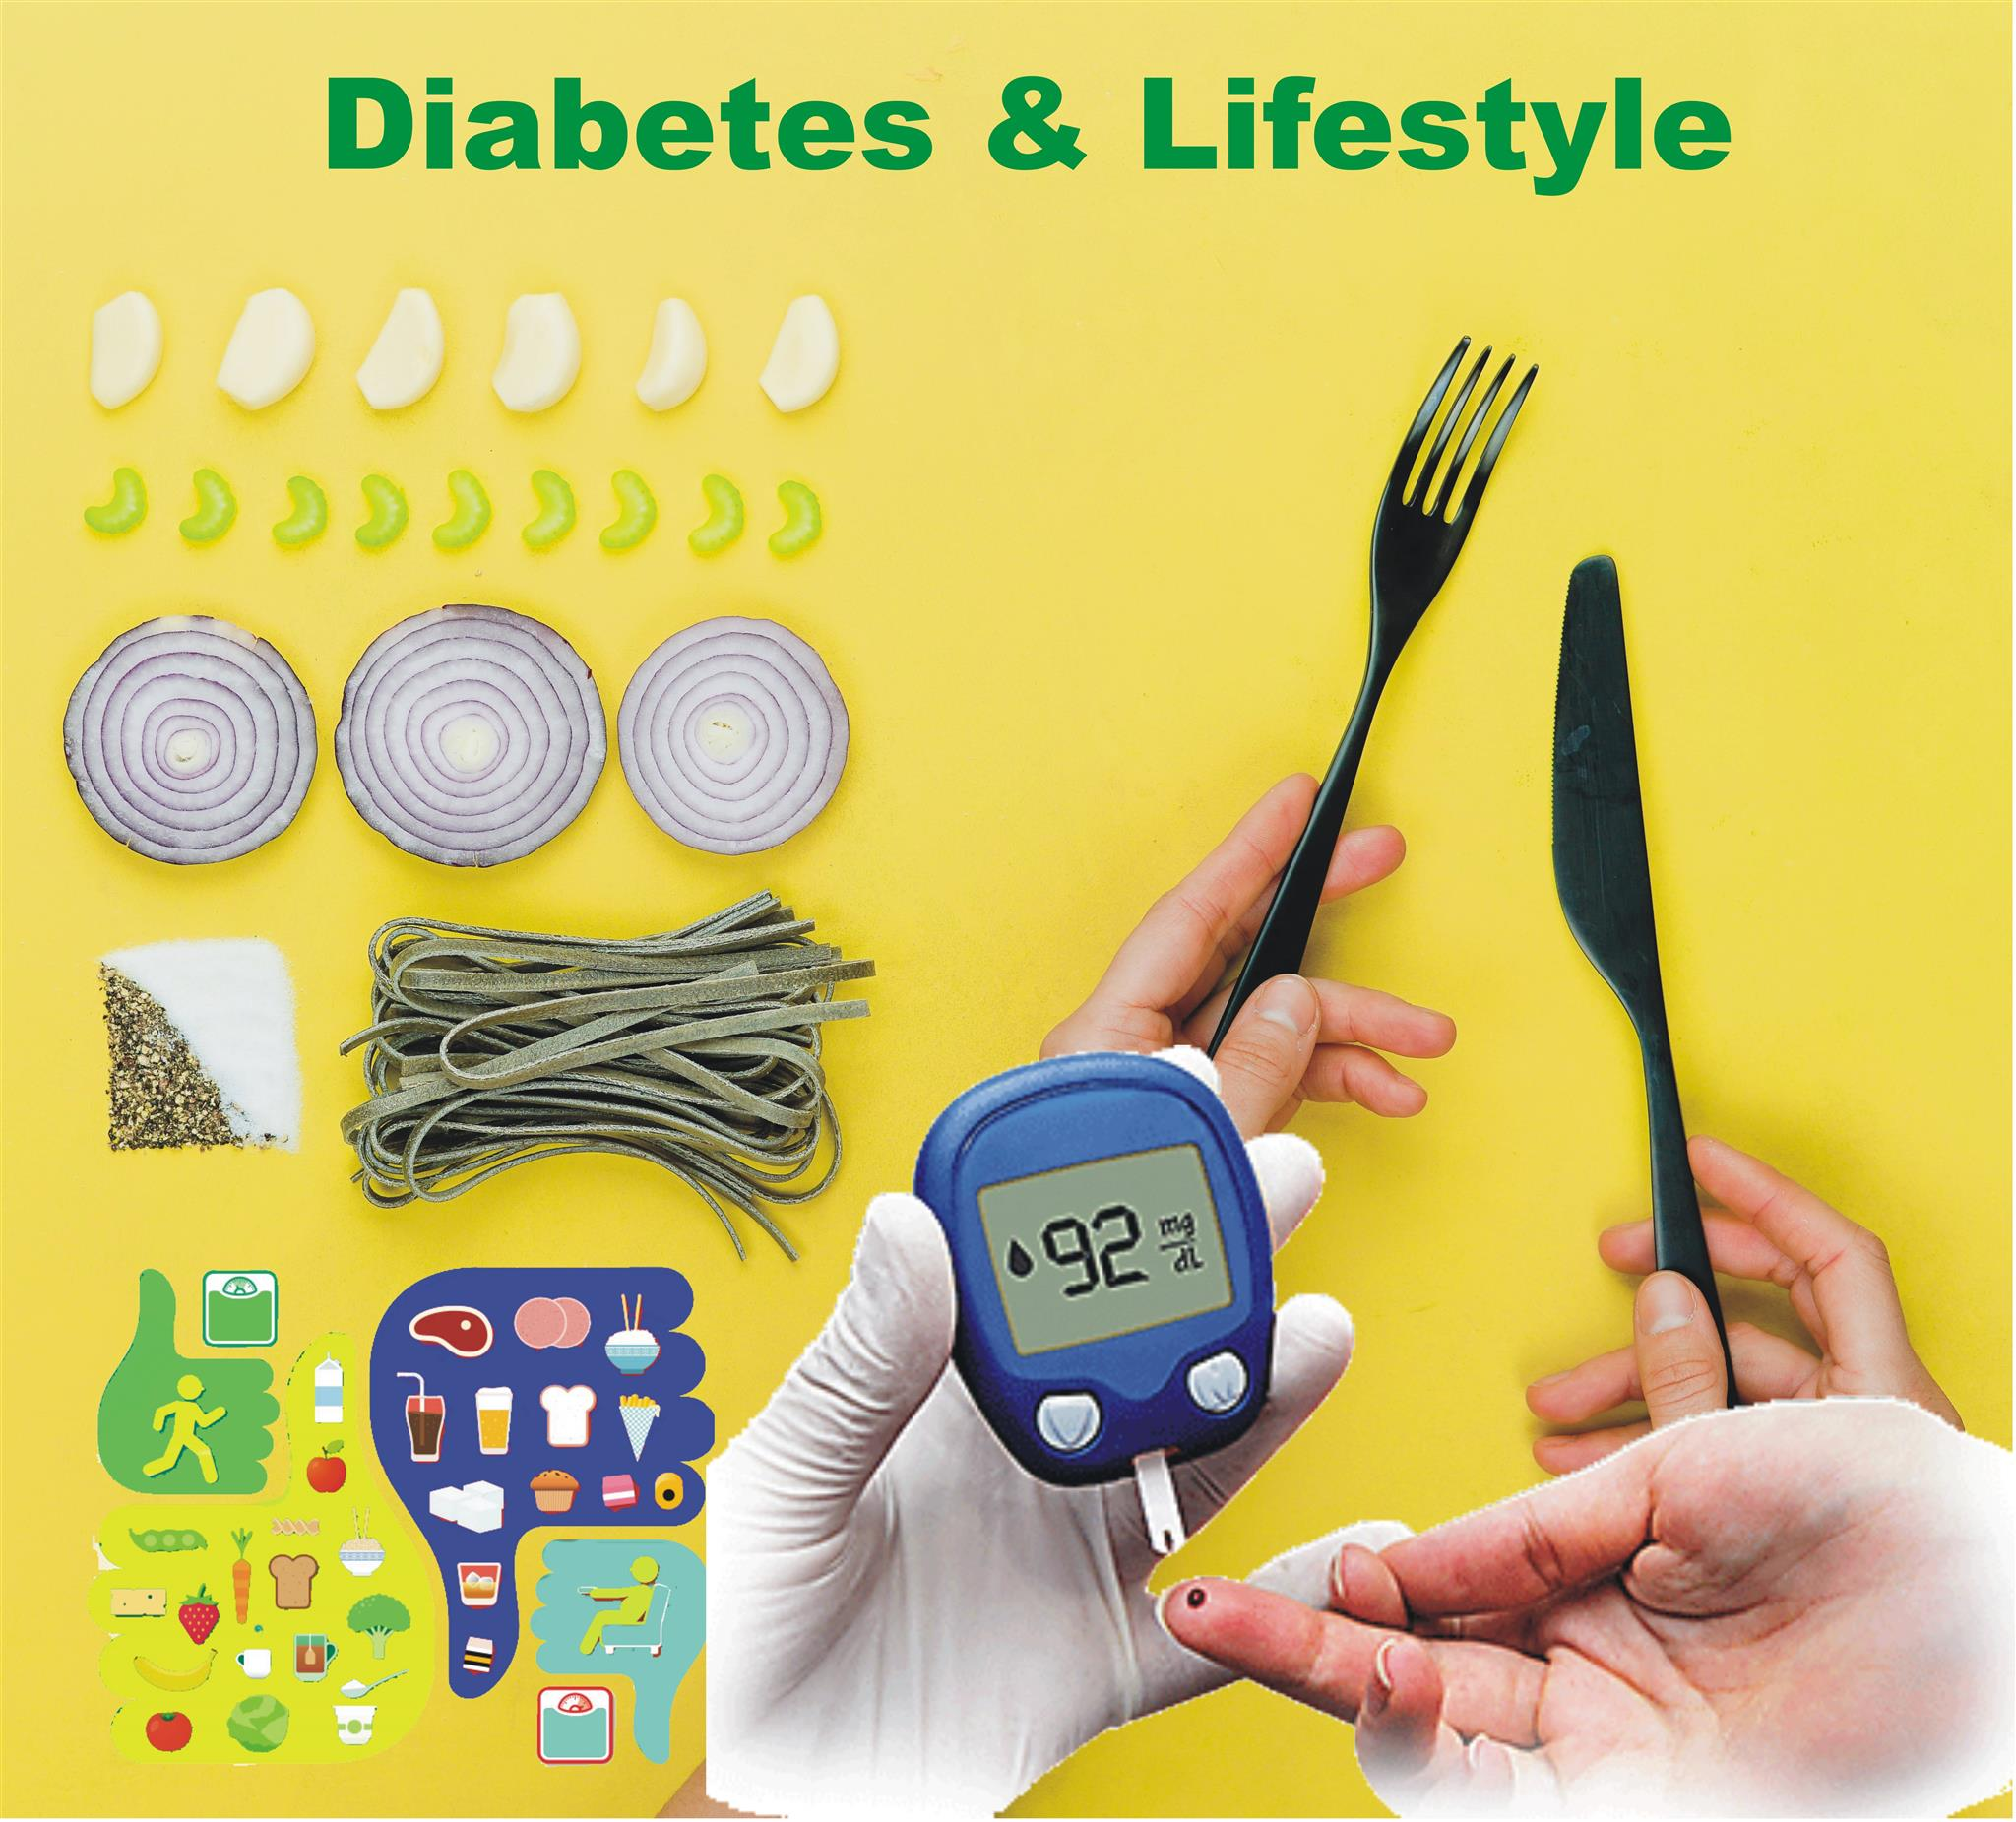 Diabetes & Lifestyle